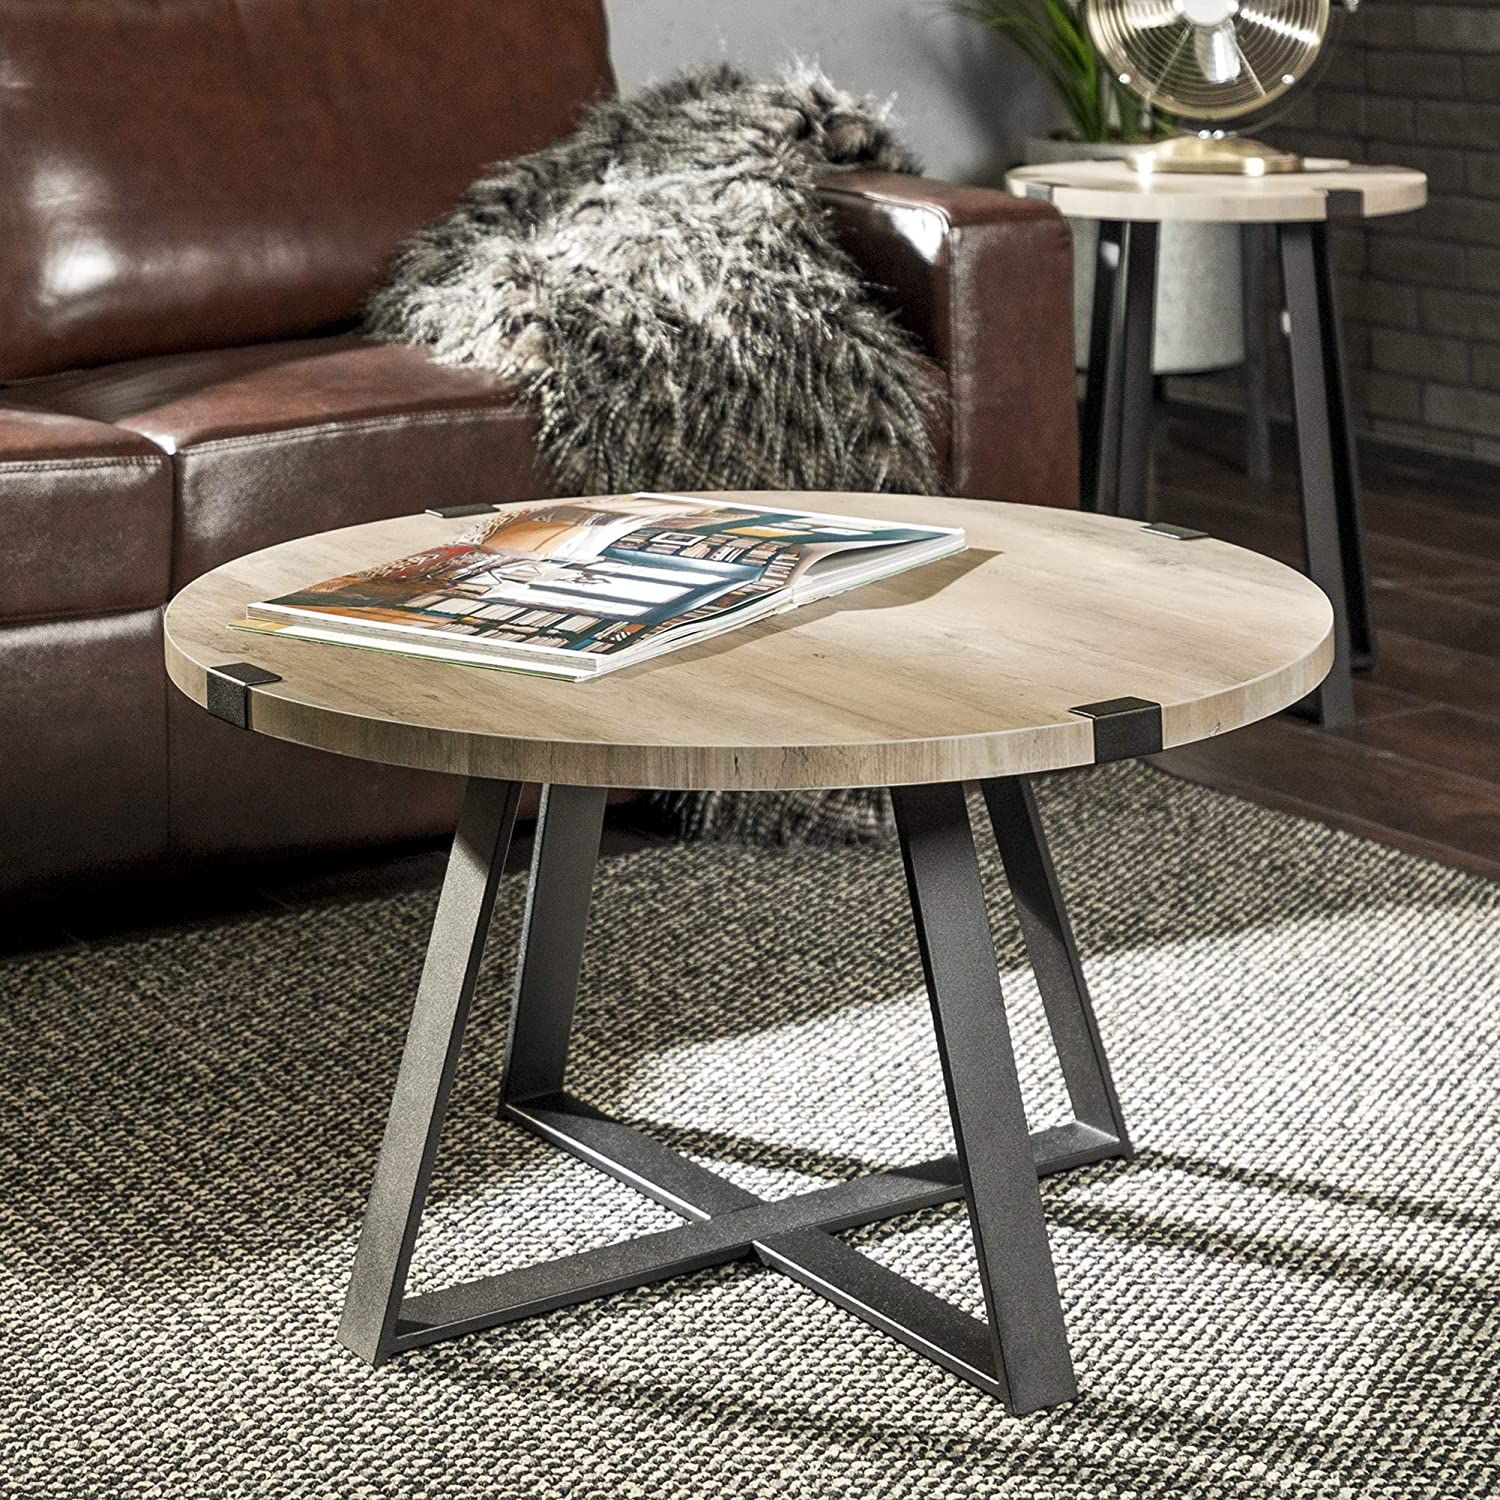 We Furniture Rustic Farmhouse Round Metal Coffee Accent Table Living Room 30 Inch Grey B Farmhouse Style Coffee Table Living Room Accent Tables Living Table